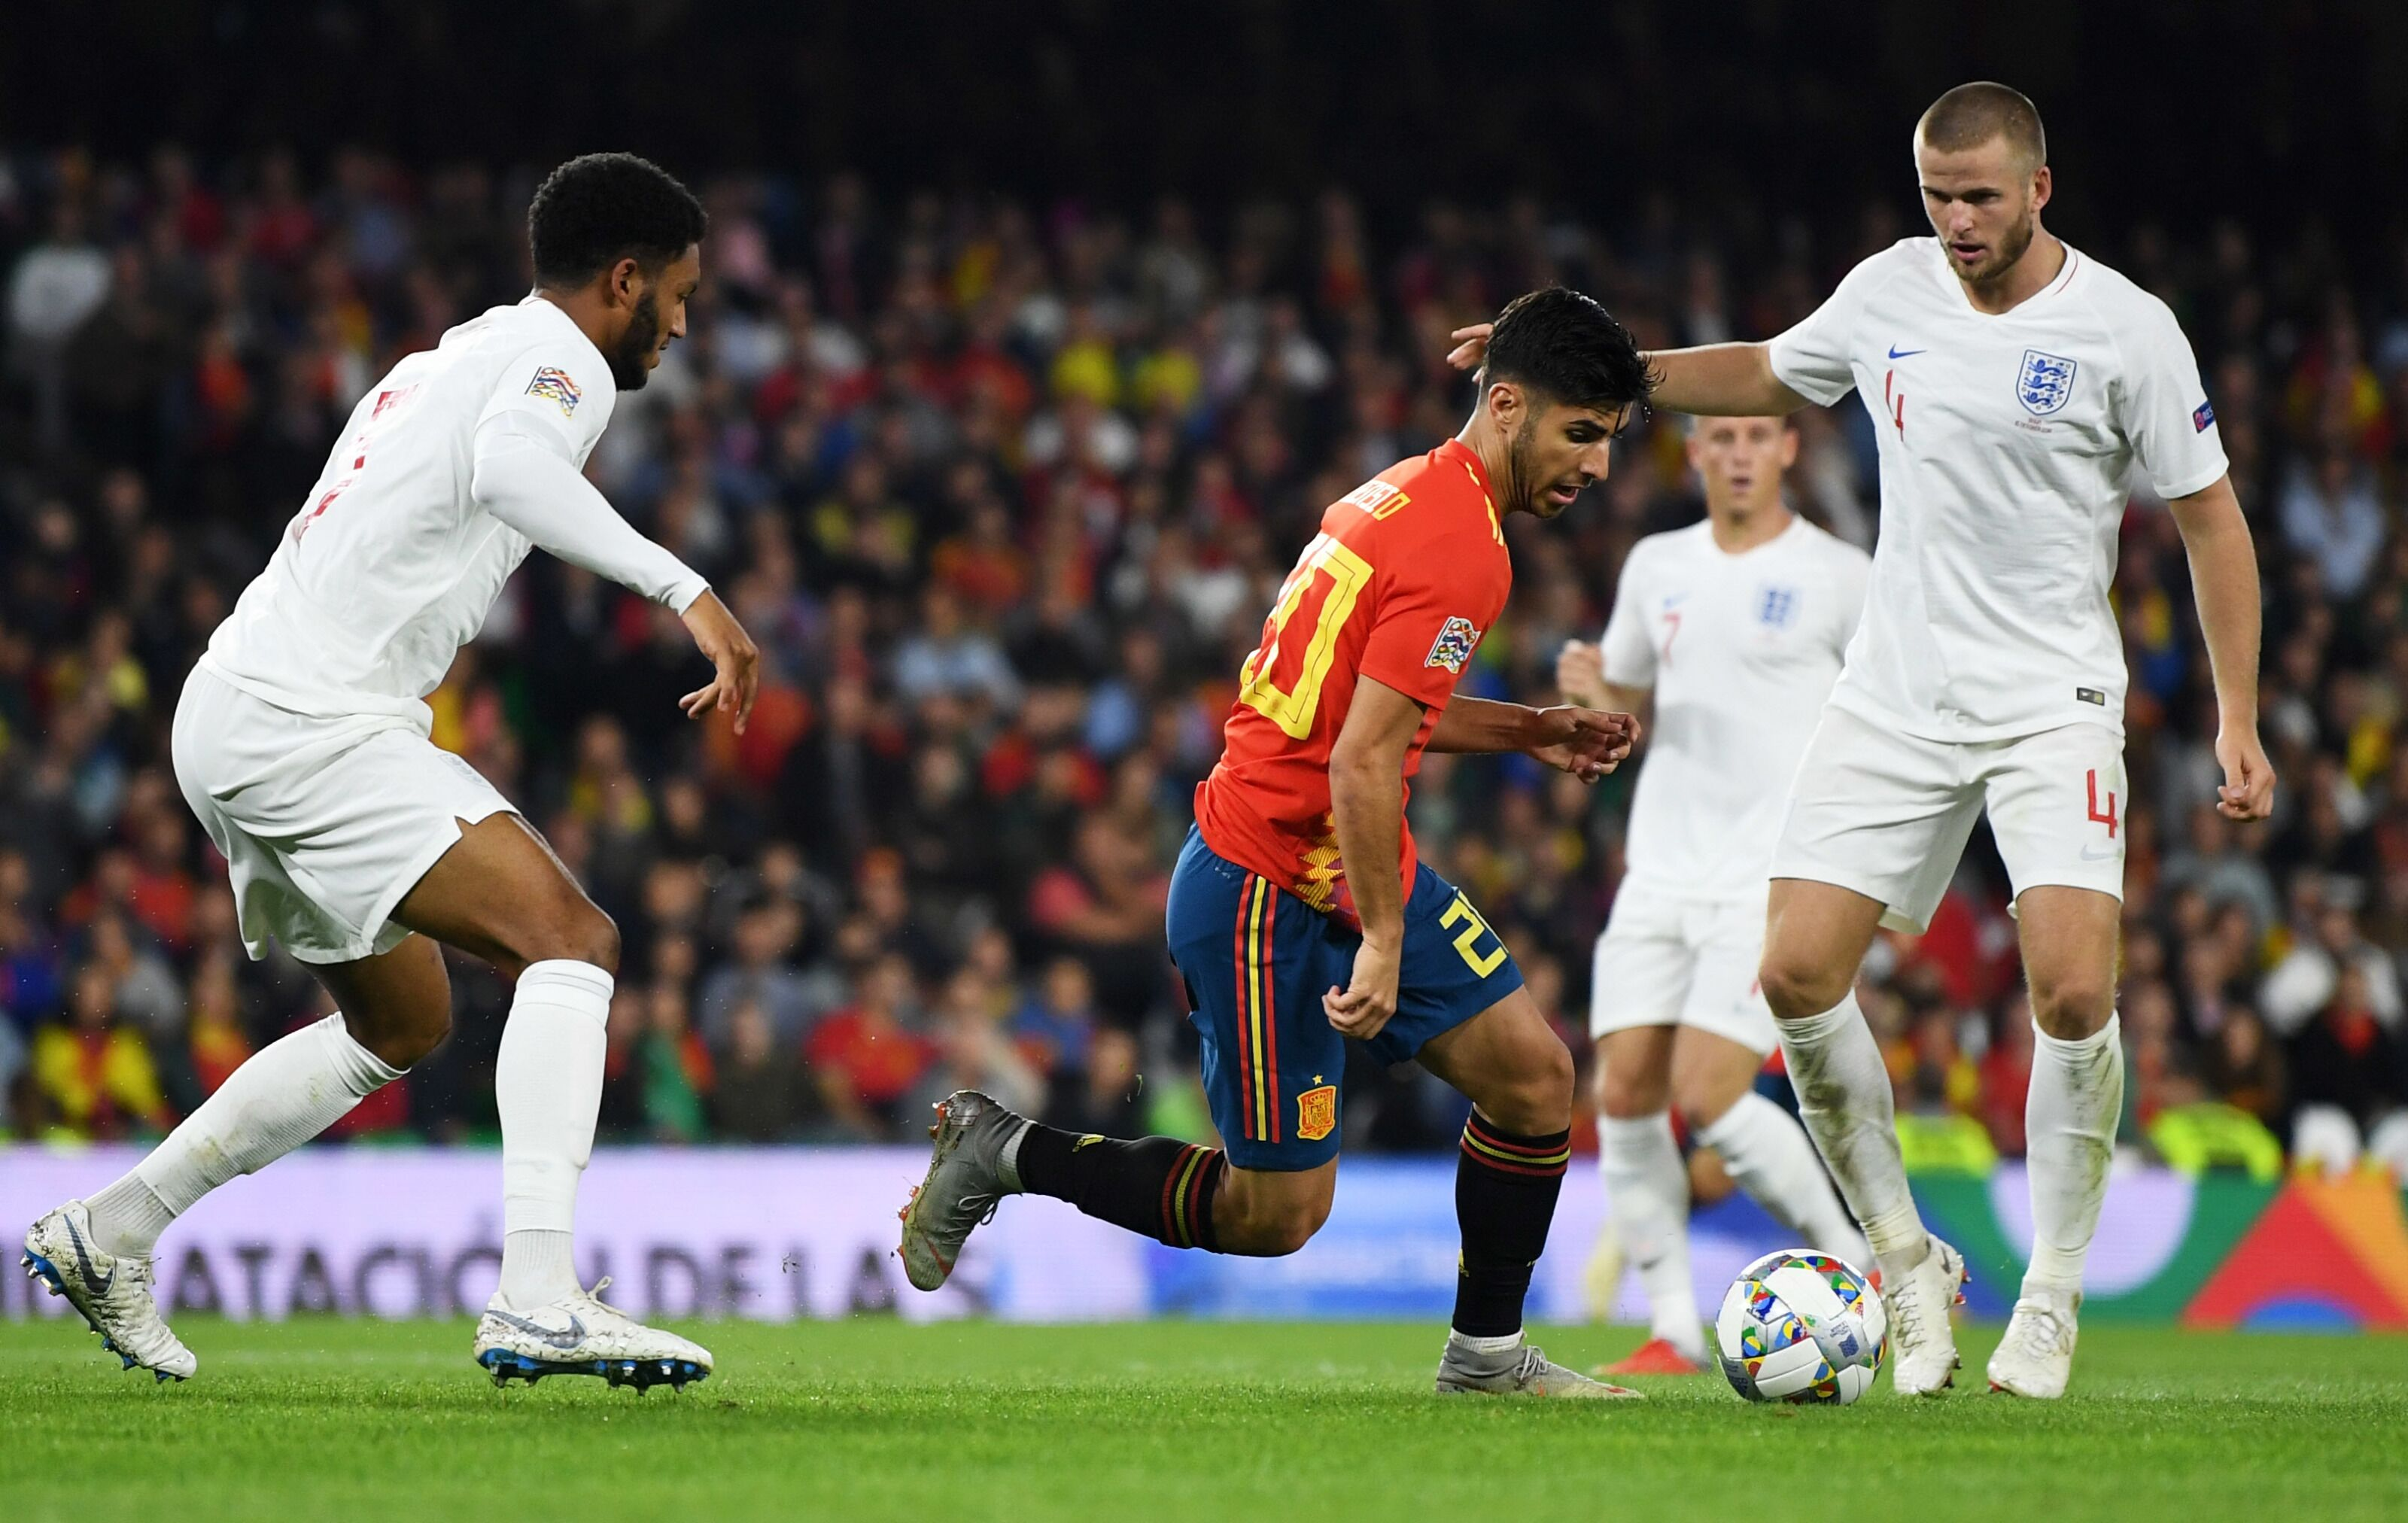 Liverpool starlet Joe Gomez better than Harry Maguire and 'stood strong'